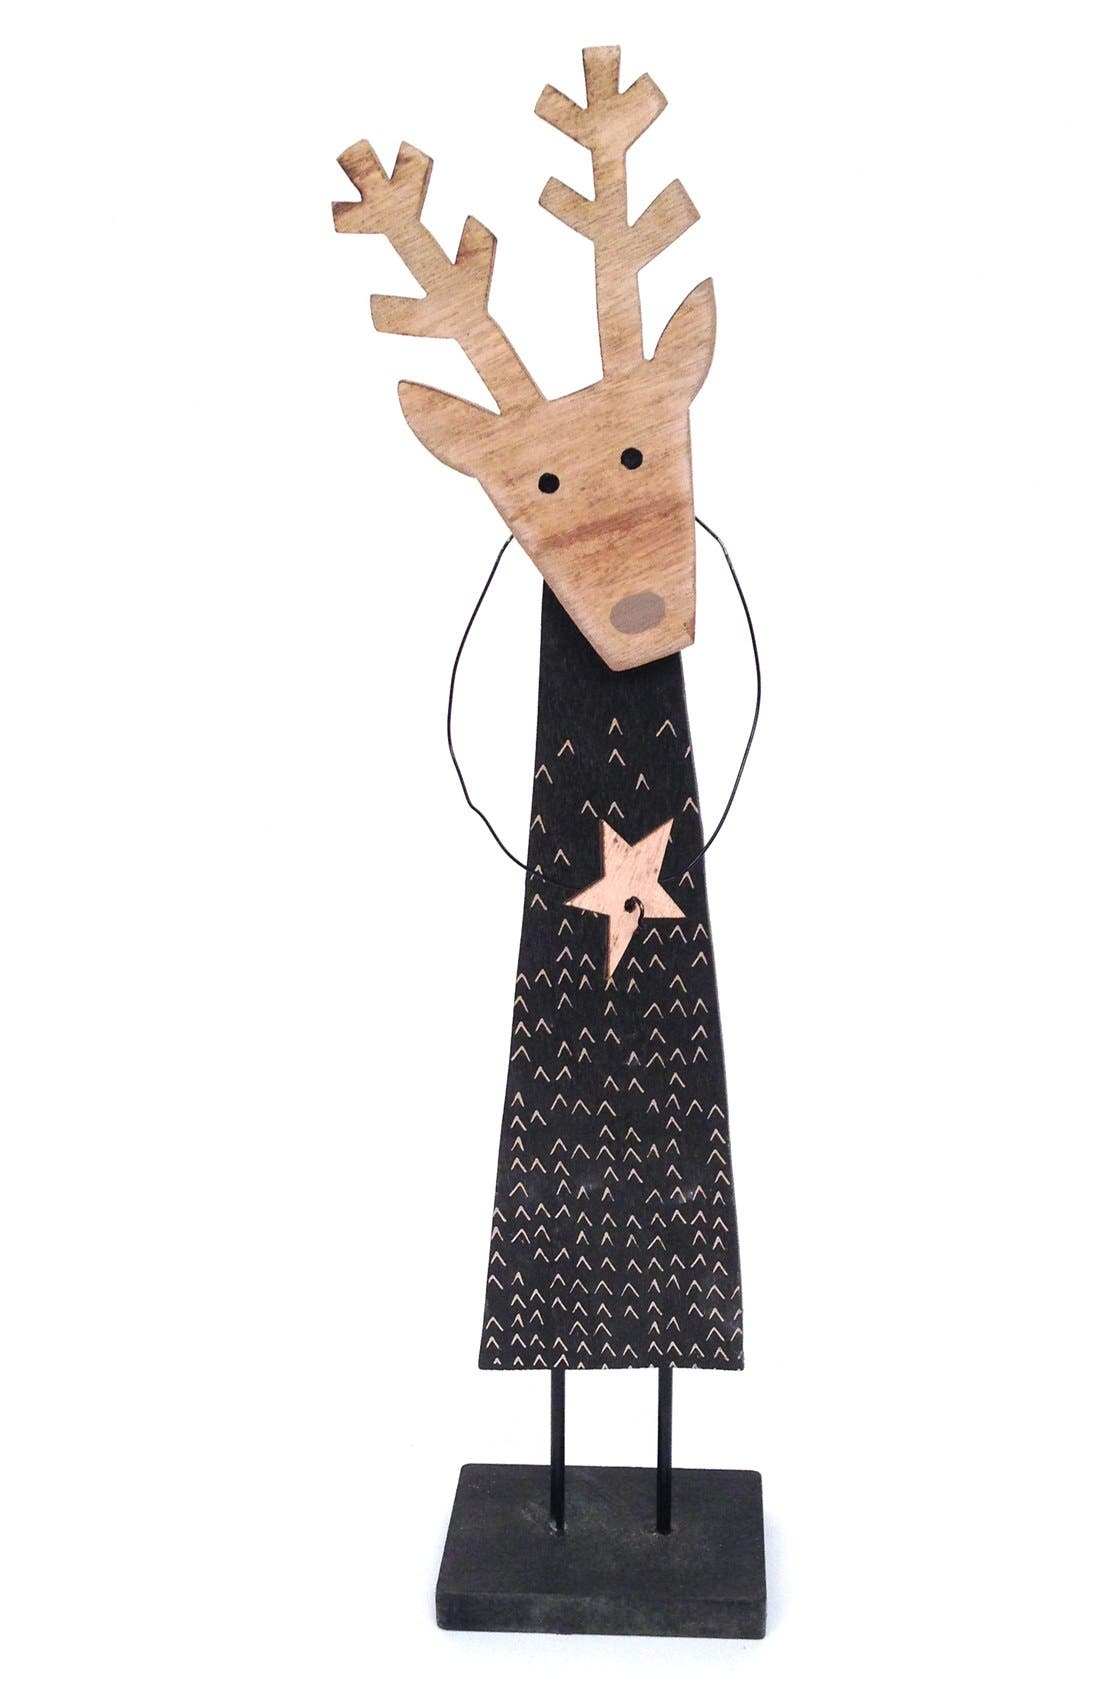 'Deer with Star' Figurine,                             Main thumbnail 1, color,                             Black/ Natural